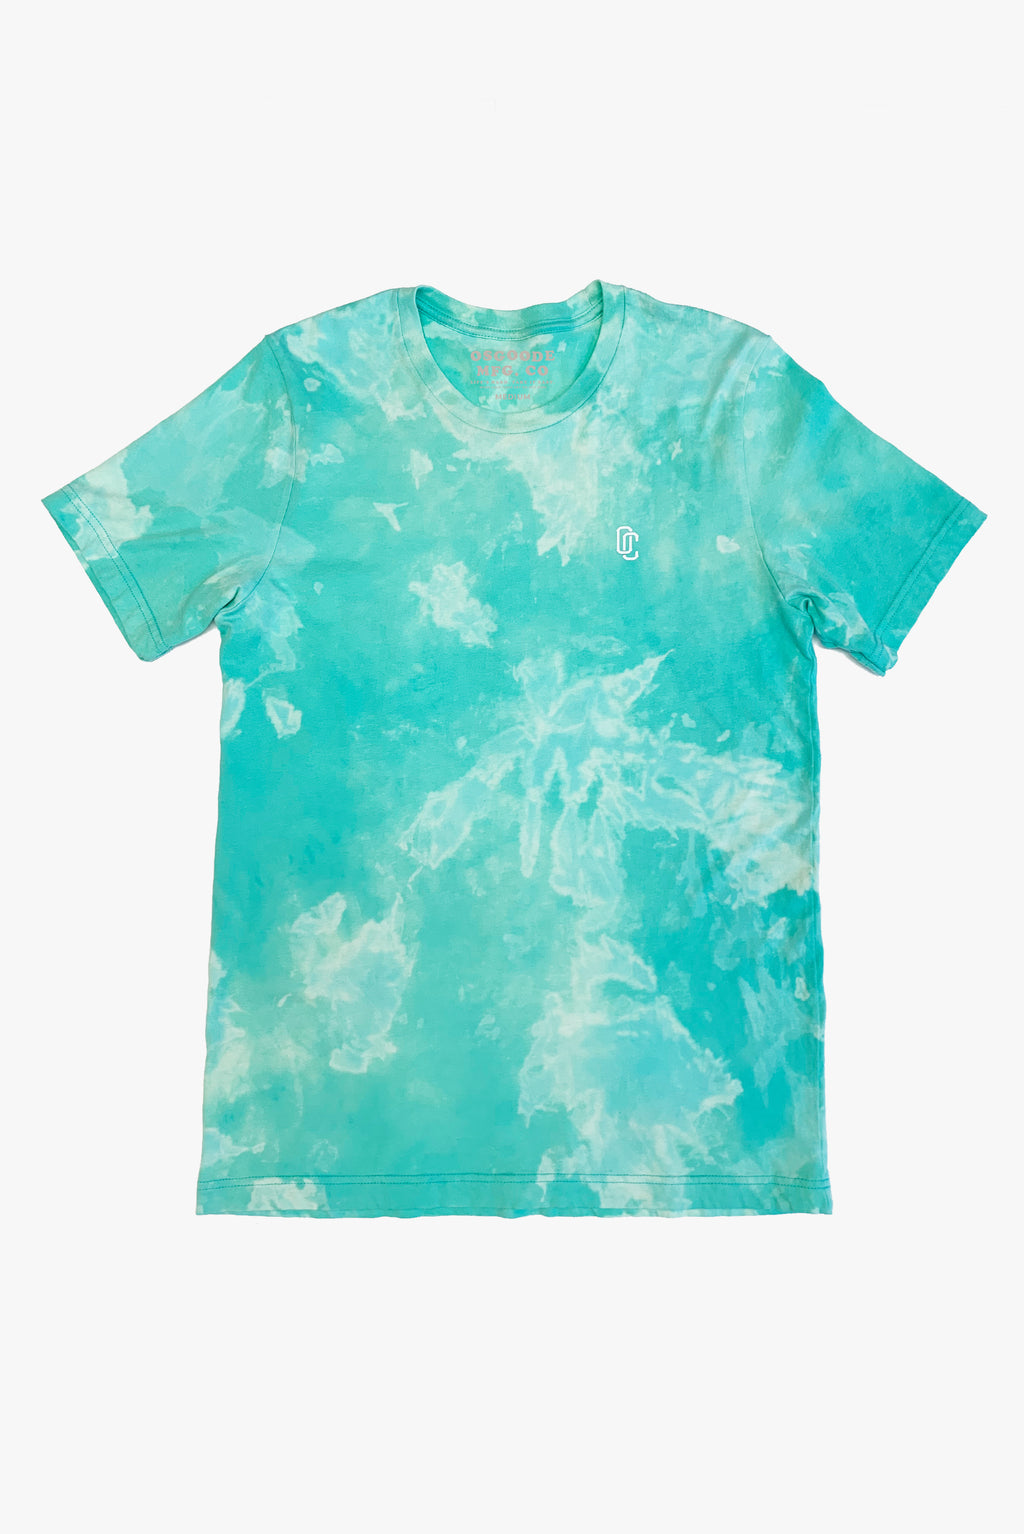 SUMMER HAZE T-SHIRT MINT